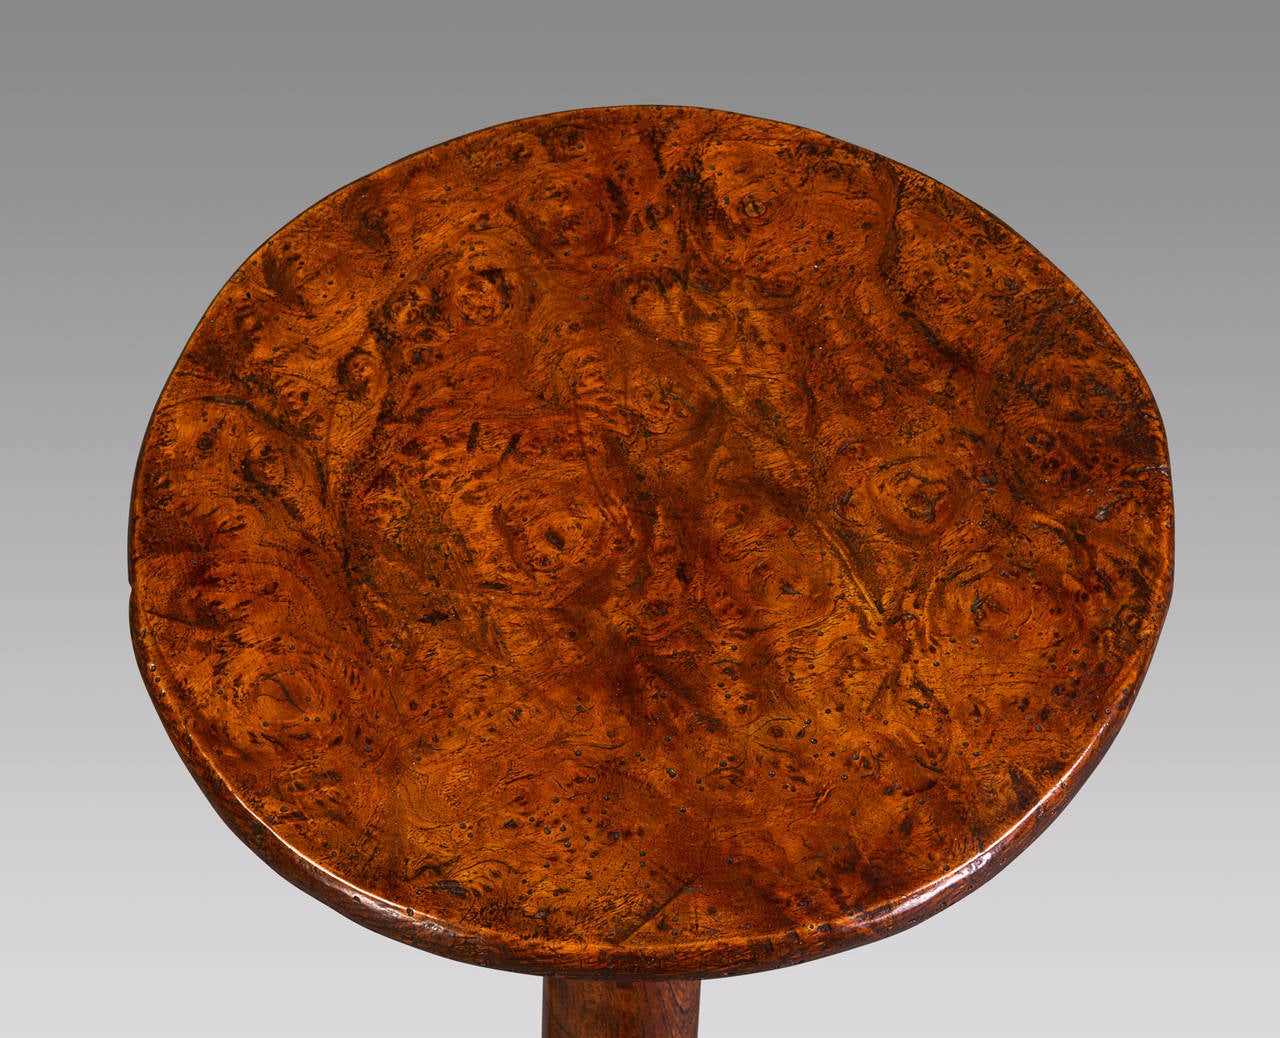 A wonderful piece of superb design with a diminutive top and strongly splayed legs, crafted in solid elm, the decorative drop at the base of the column points to the 19th century origins of this lovely table. The single piece burr elm top retains a